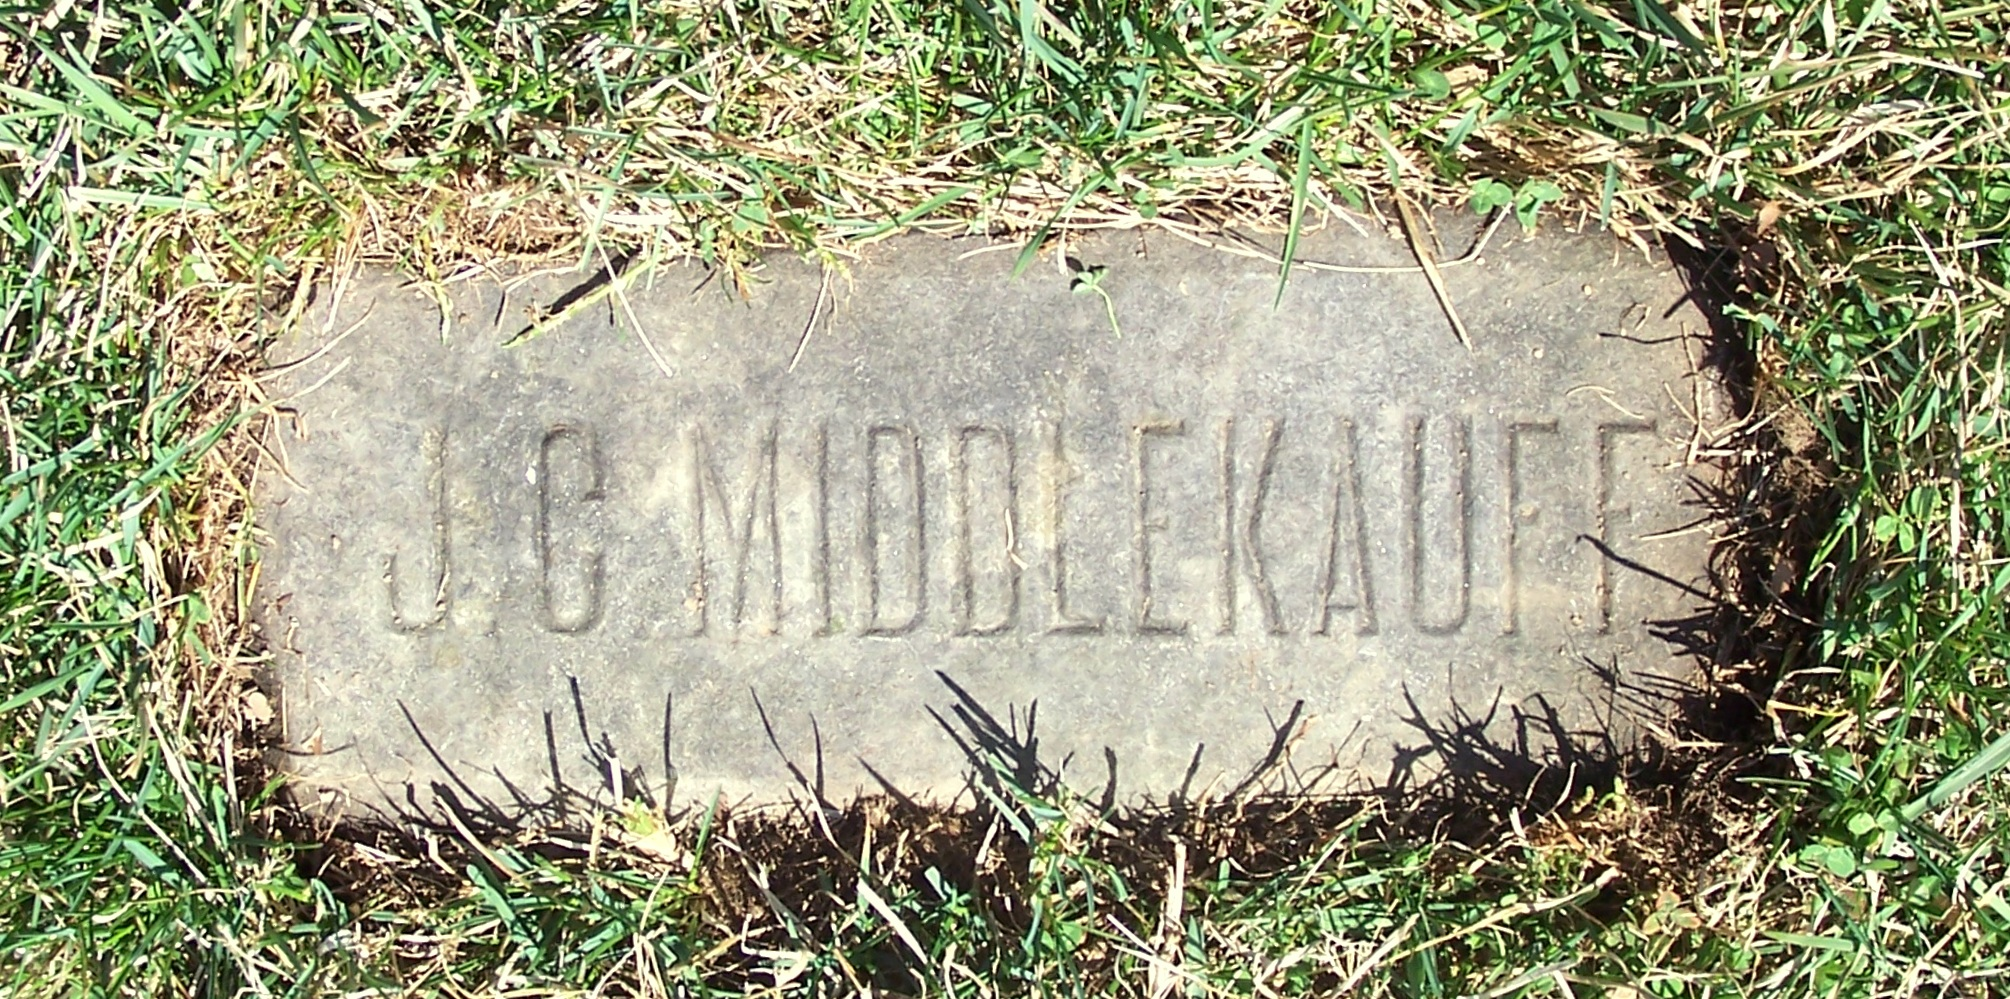 Officer John C. Middlekauff | Hagerstown Police Department, Maryland